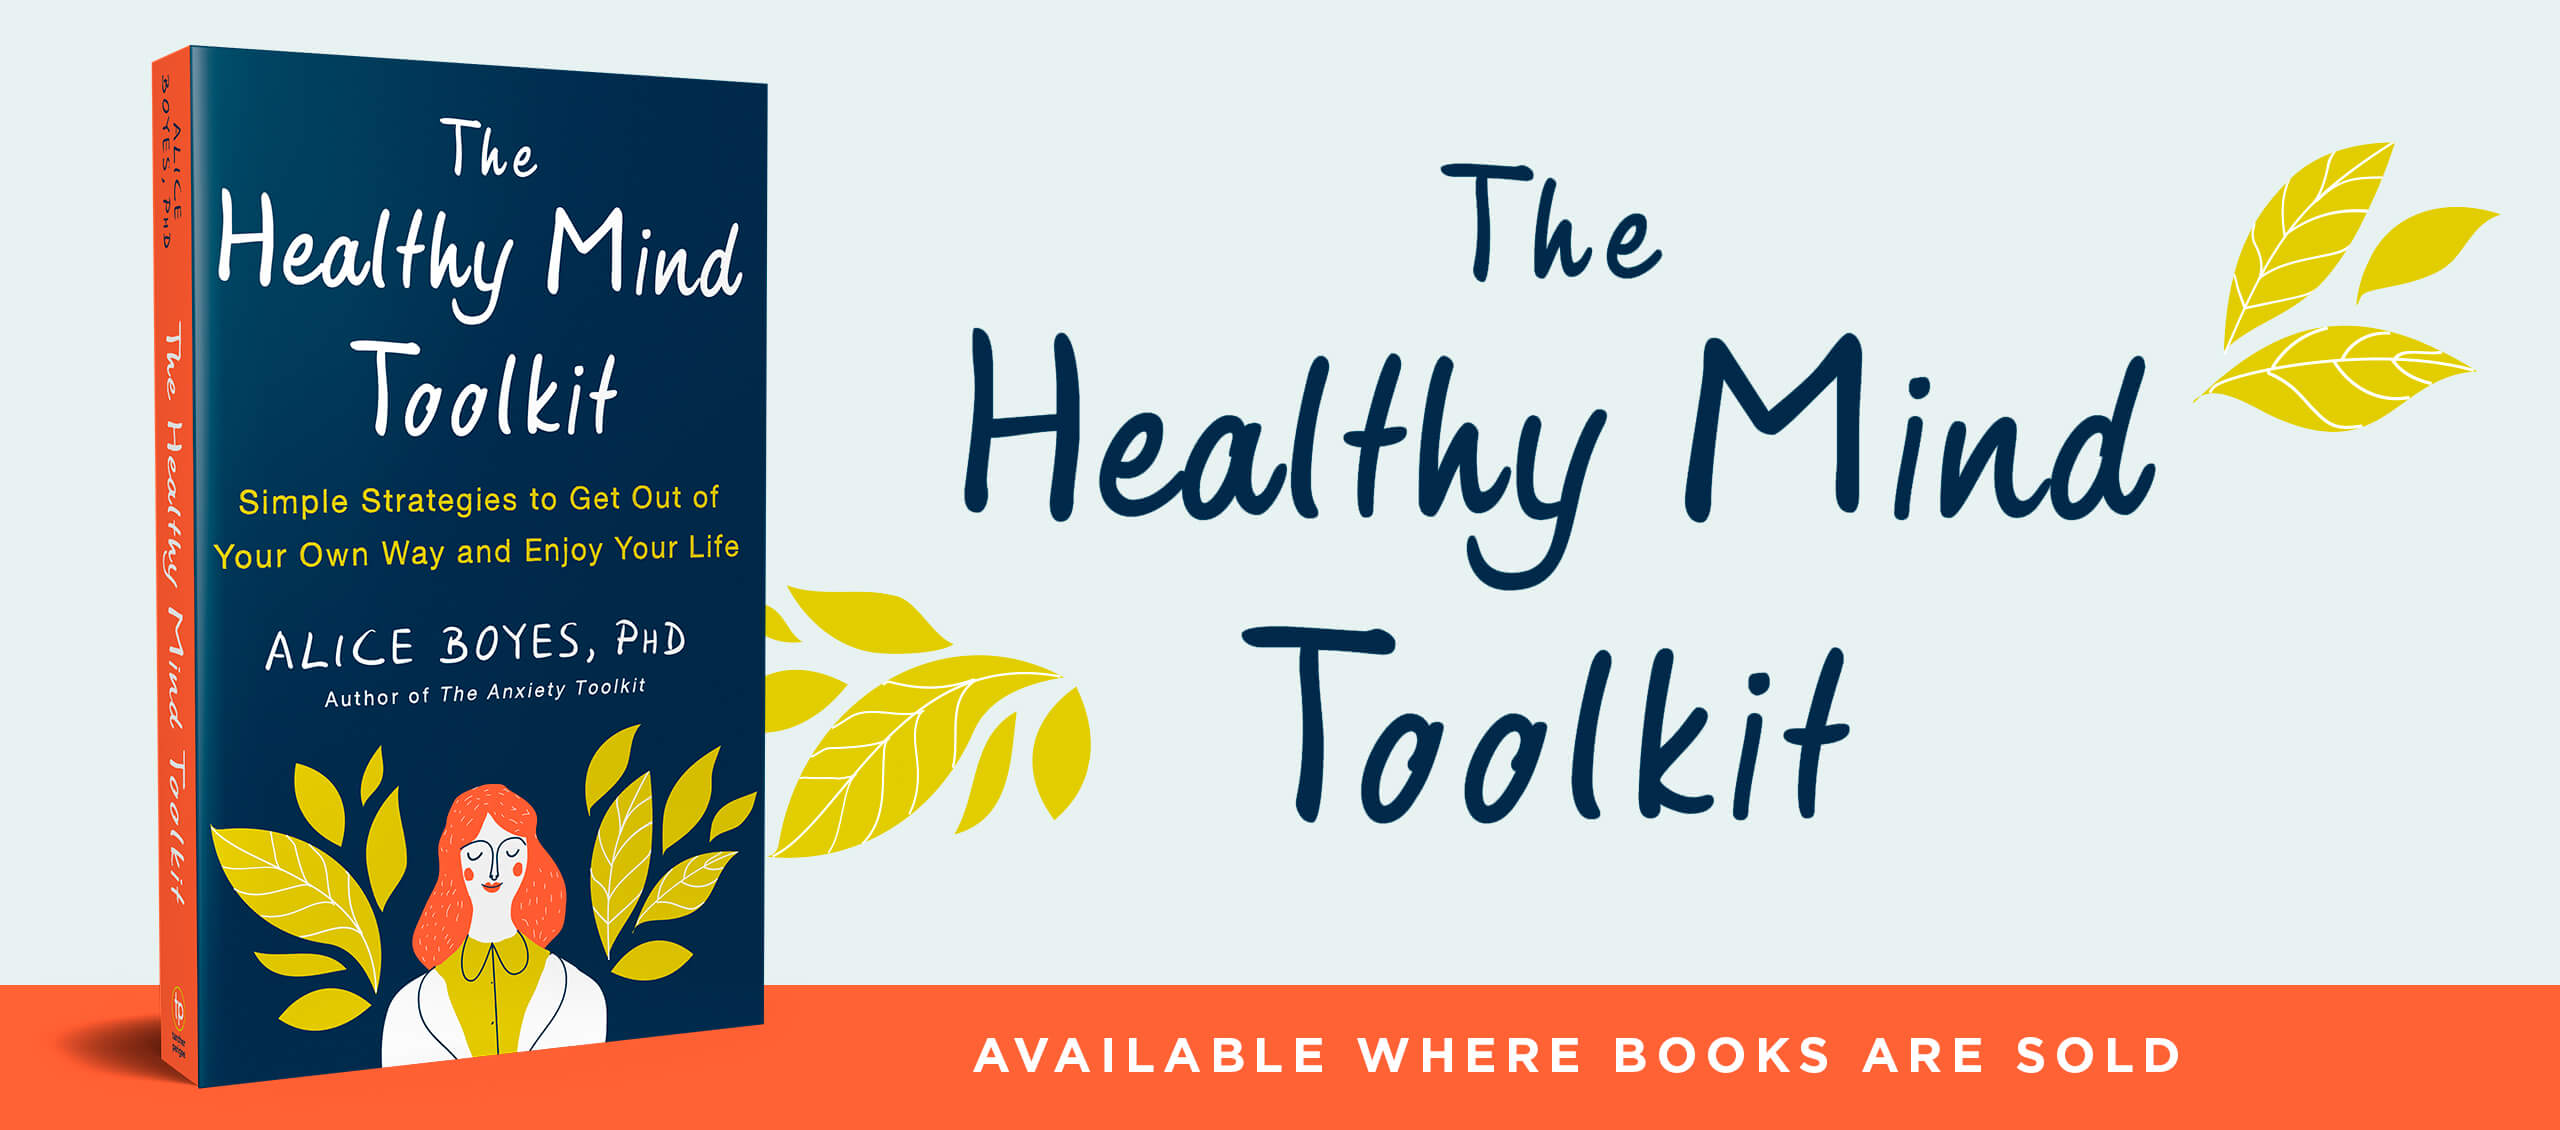 The Healthy Mind Toolkit Book Website By Alice Boyes Phd